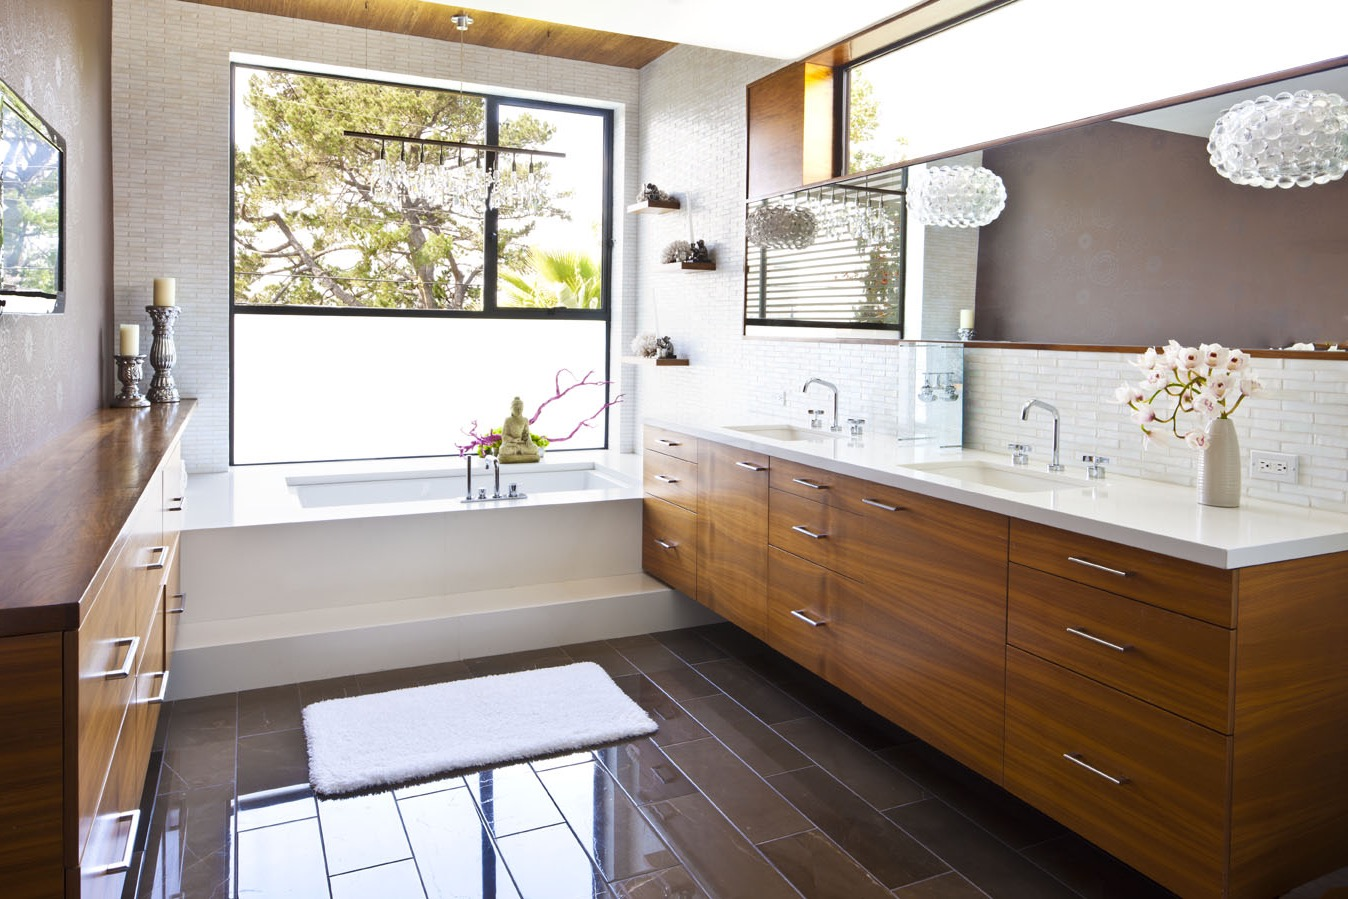 Neutral Midcentury Modern Double Vanity Bathroom Furniture (Image 16 of 18)